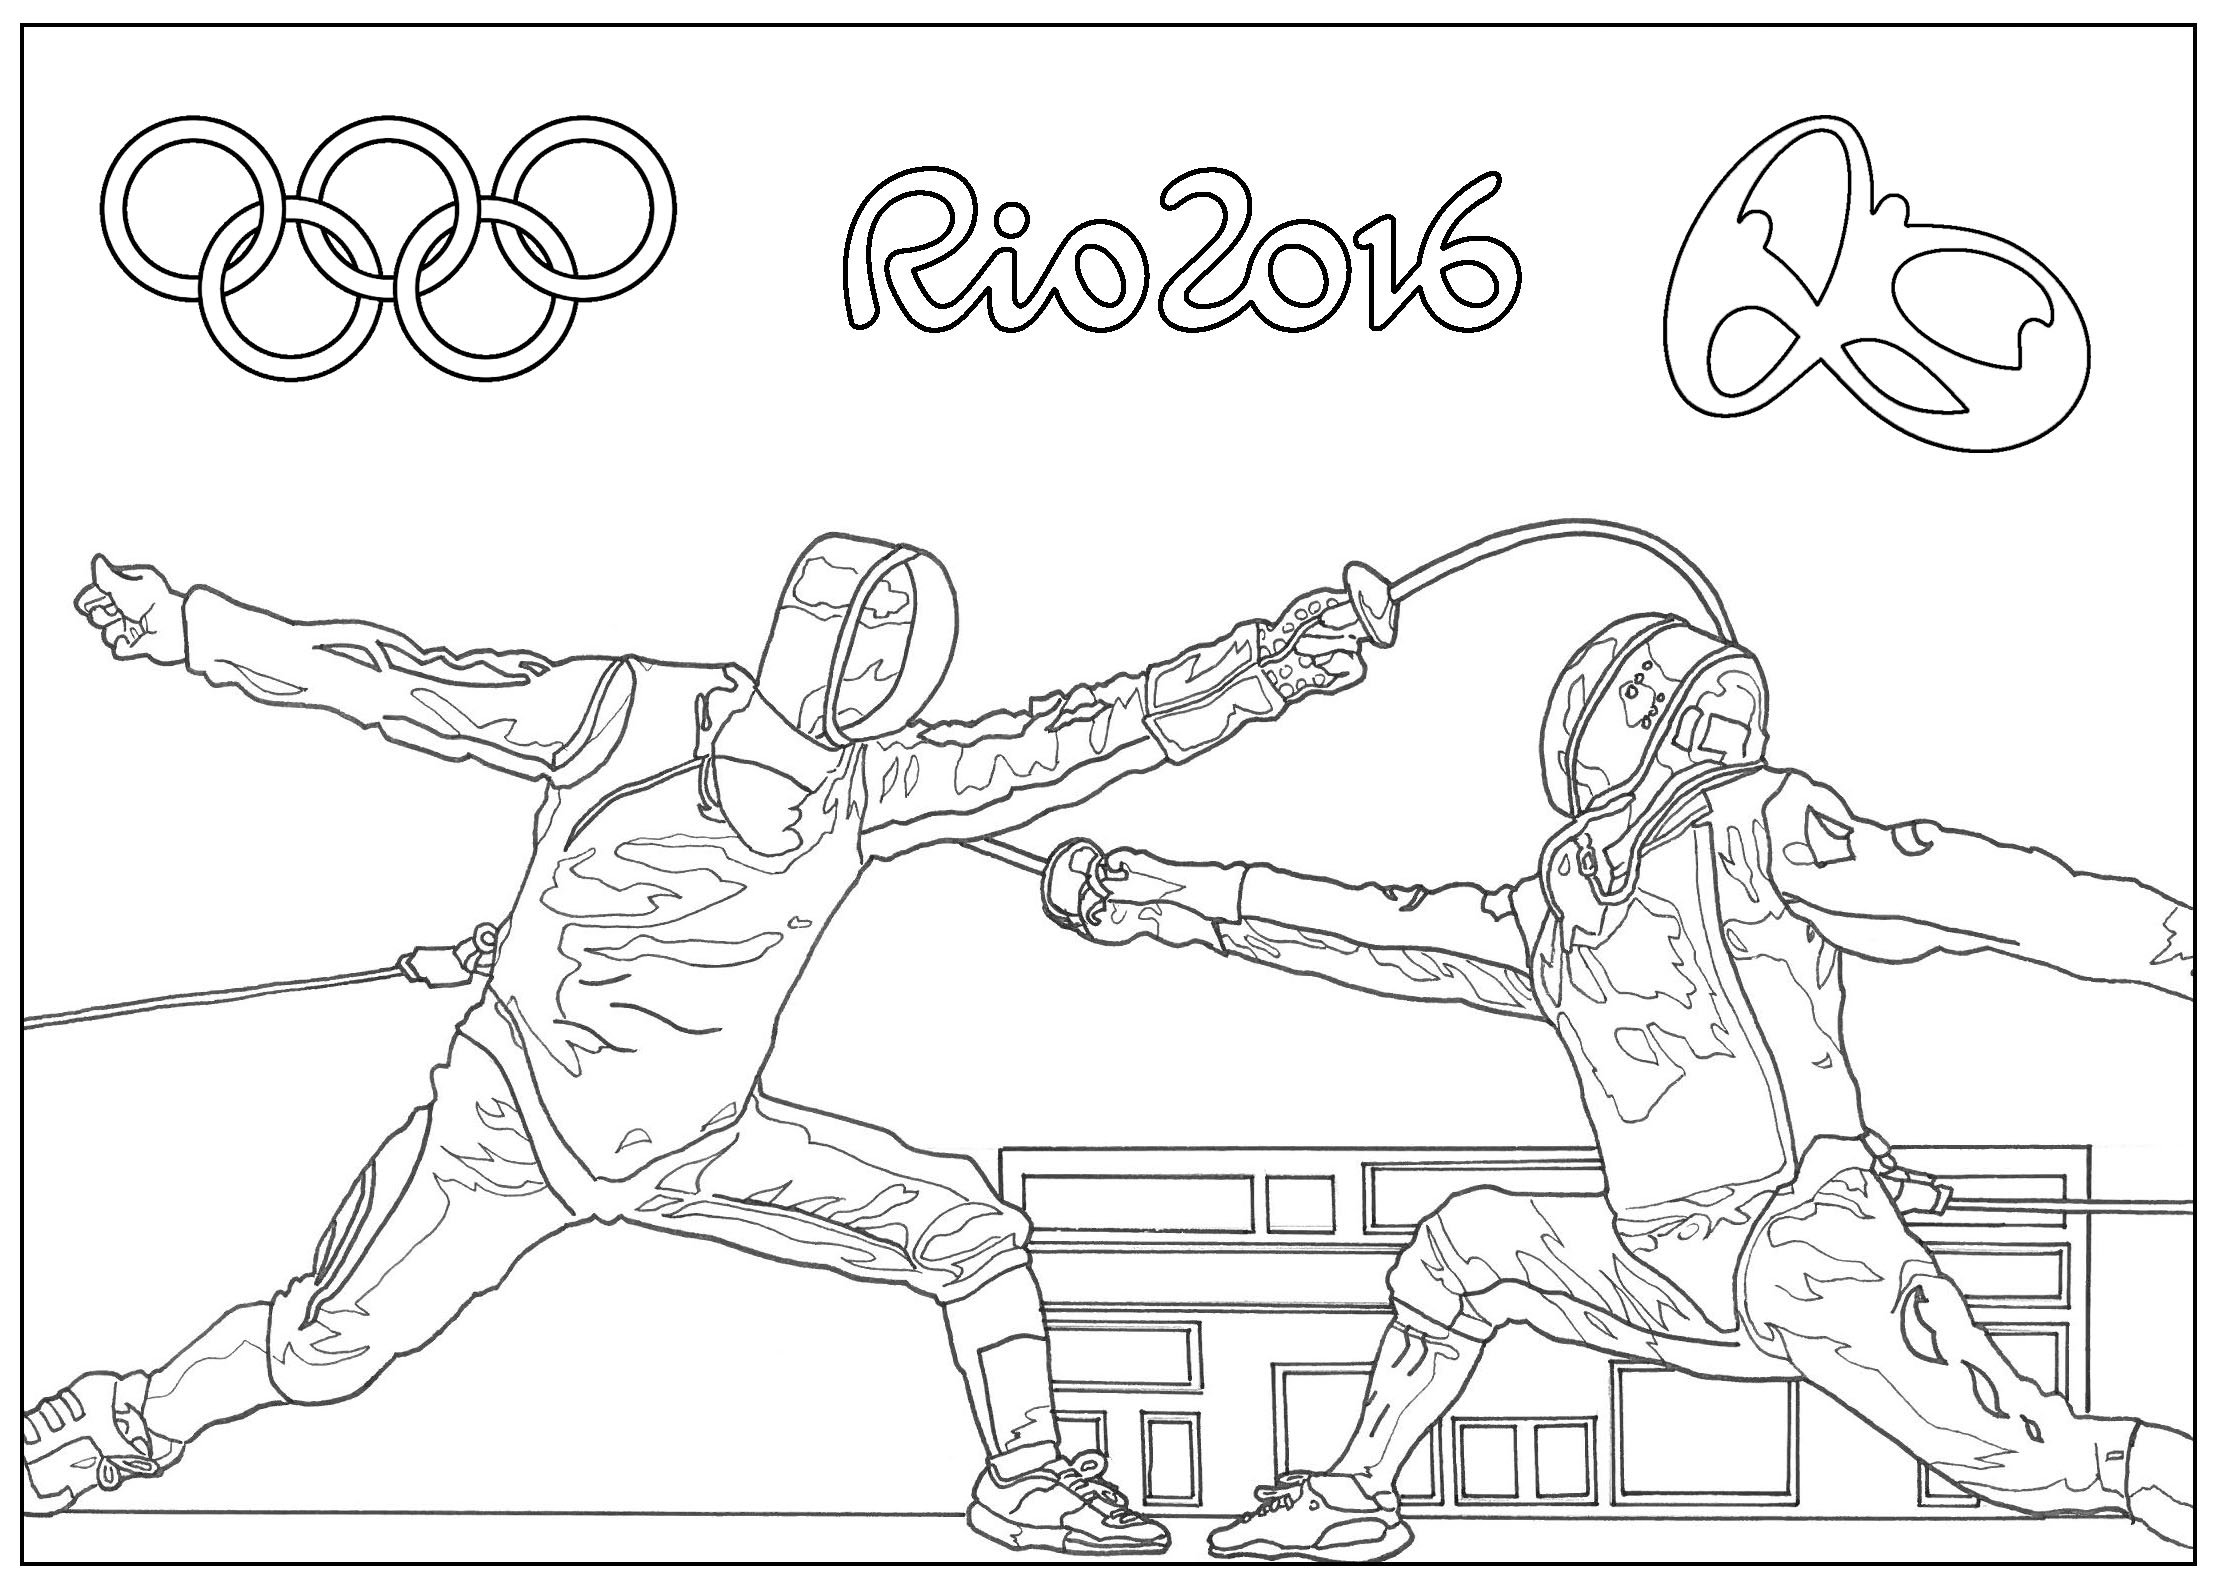 Coloring page for the 2016 Rio Olympic games : Fencing